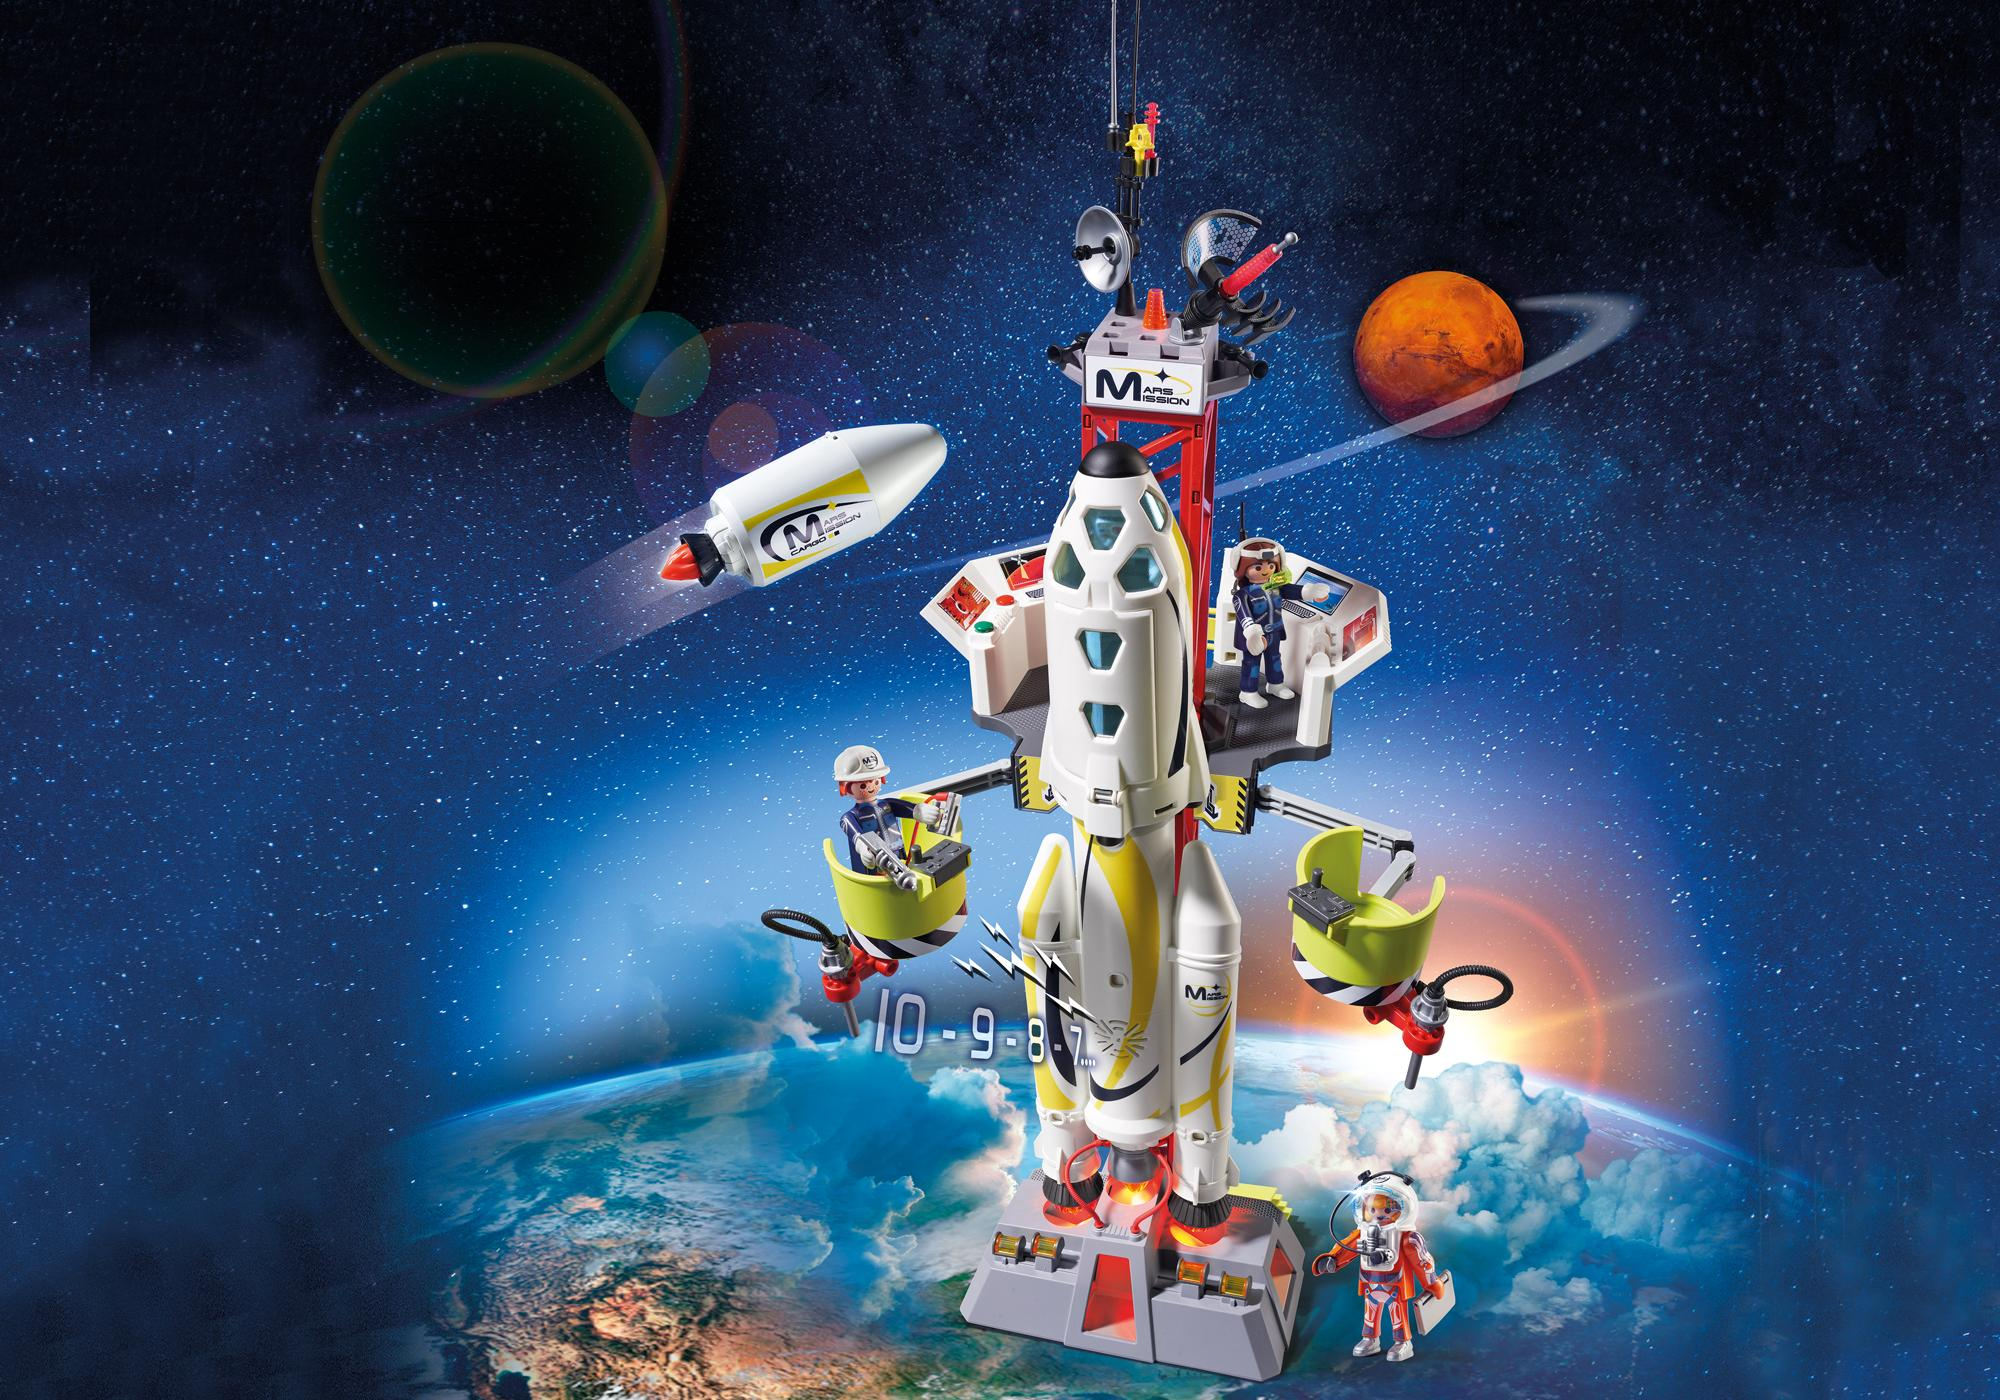 http://media.playmobil.com/i/playmobil/9488_product_detail/Mission Rocket with Launch Site